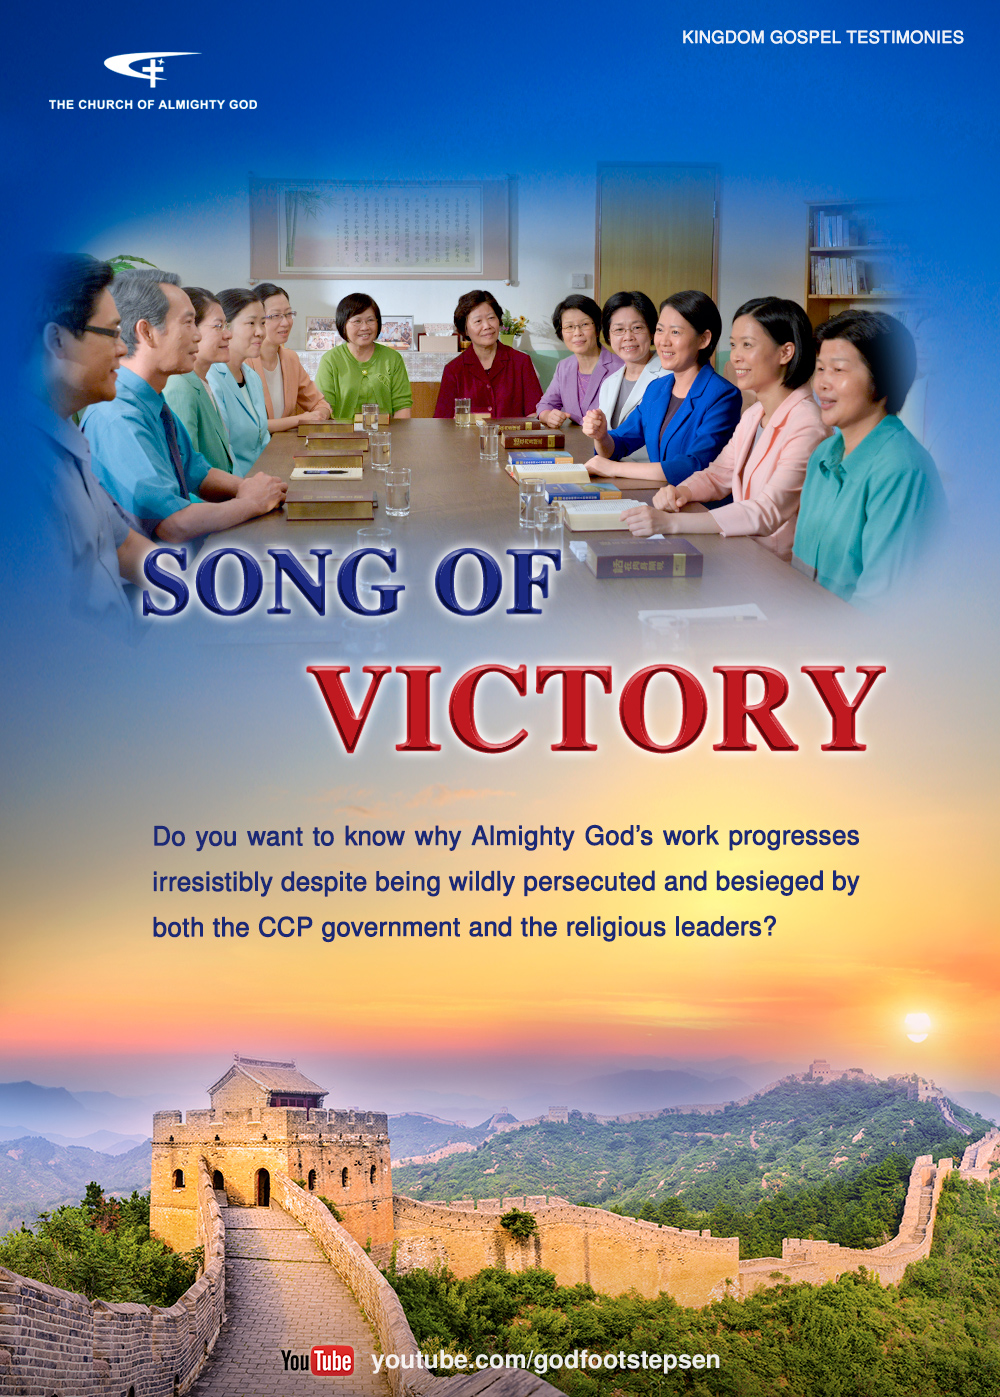 Gospel songs about victory and winning